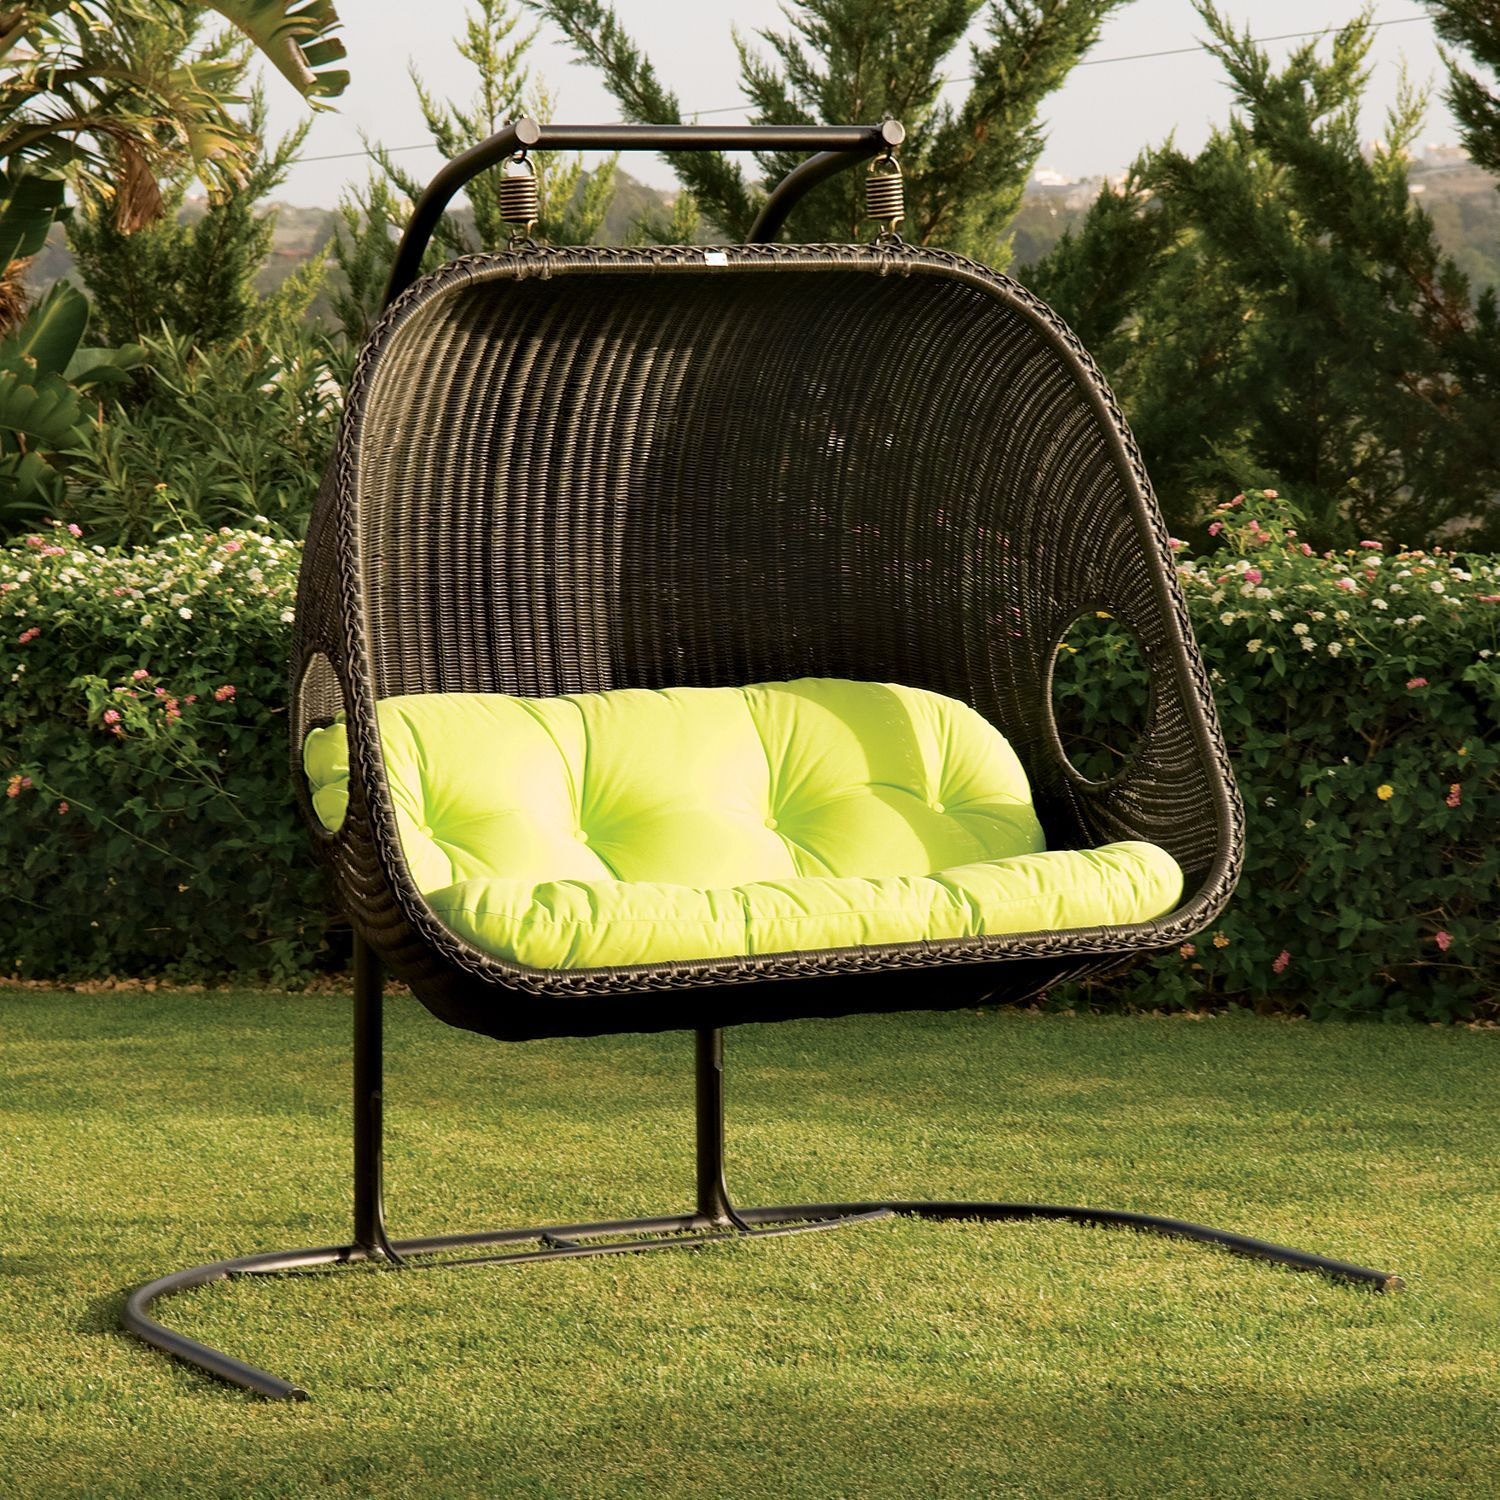 Cool Frontyard Exterior Design With Black Rattan Hanging Wicker Chair With  Tufted Seat